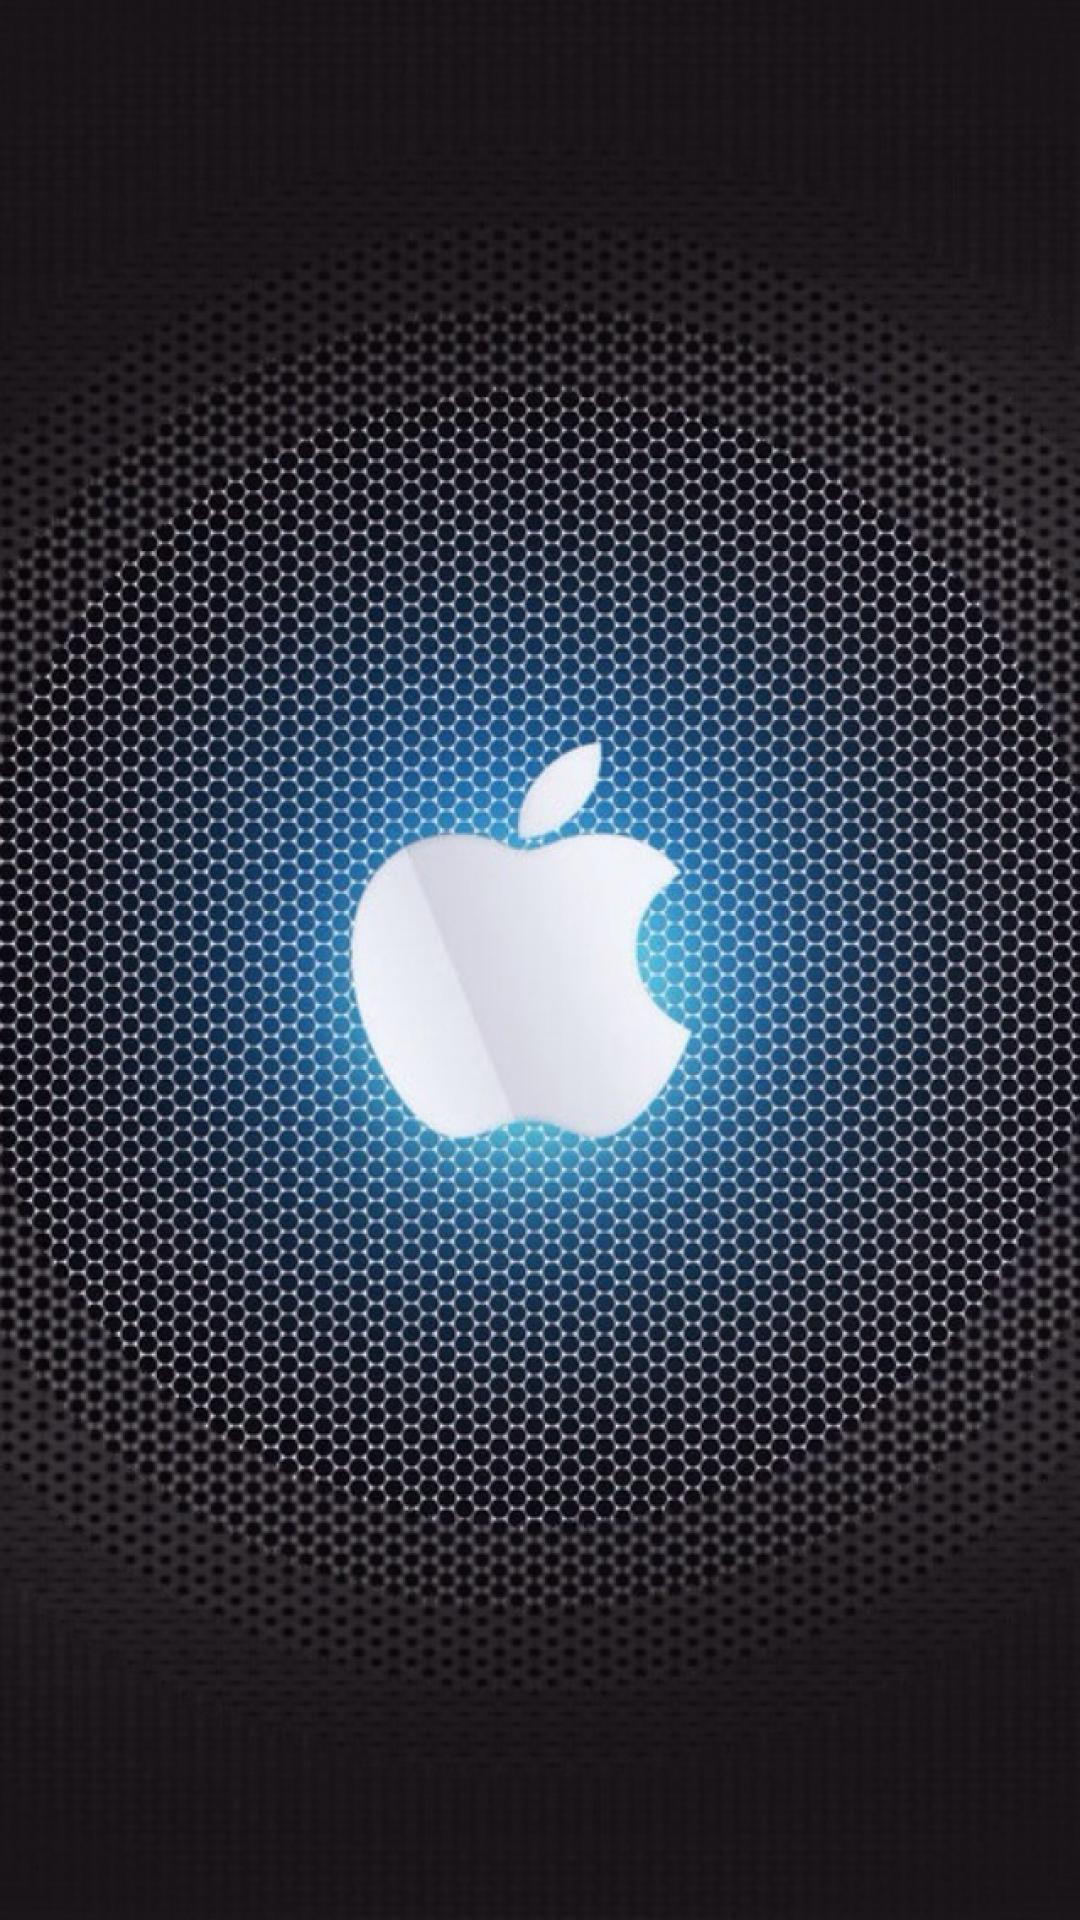 Download 700+ Wallpaper Apple For Iphone 6 HD